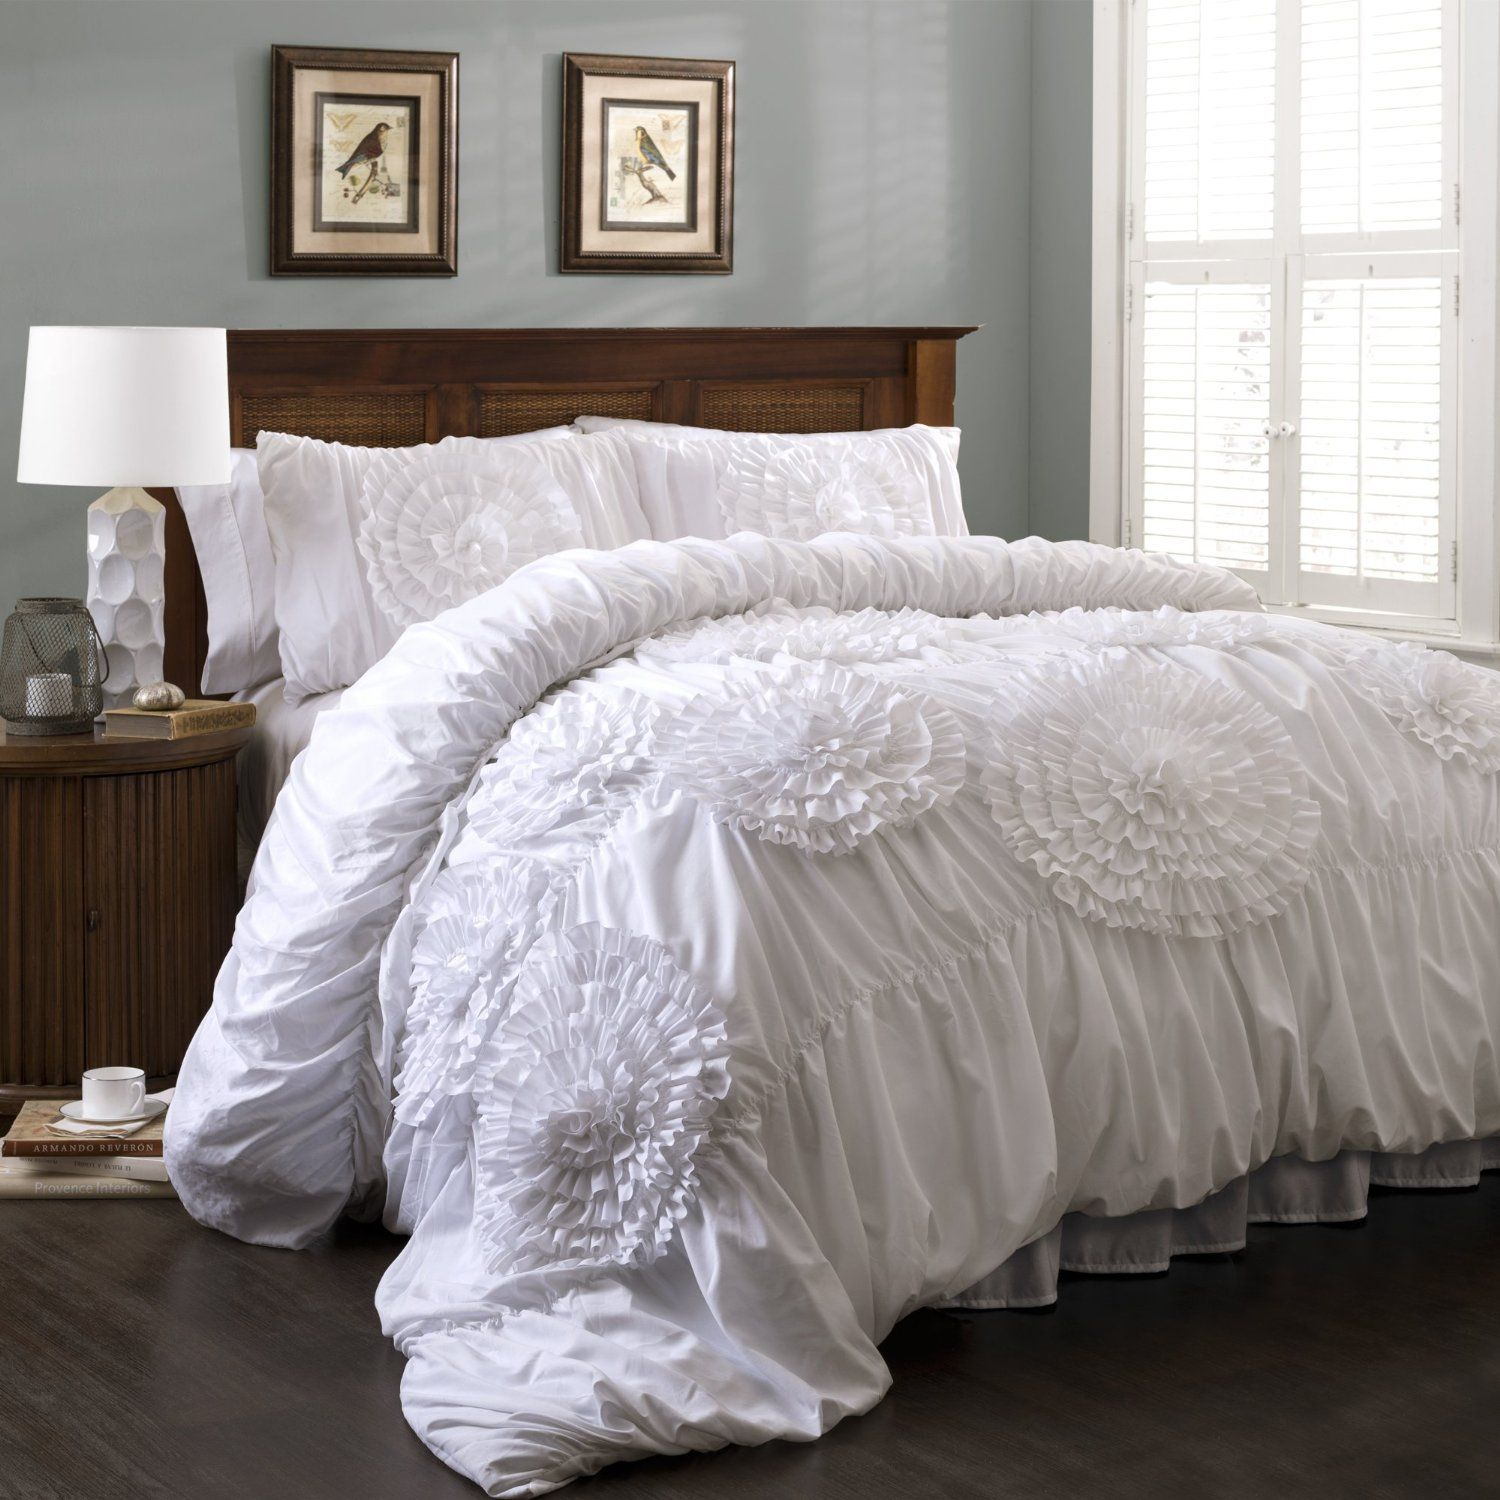 Modern white bedding - 11 White Bedding Sets You Ll Fall In Love With This Is